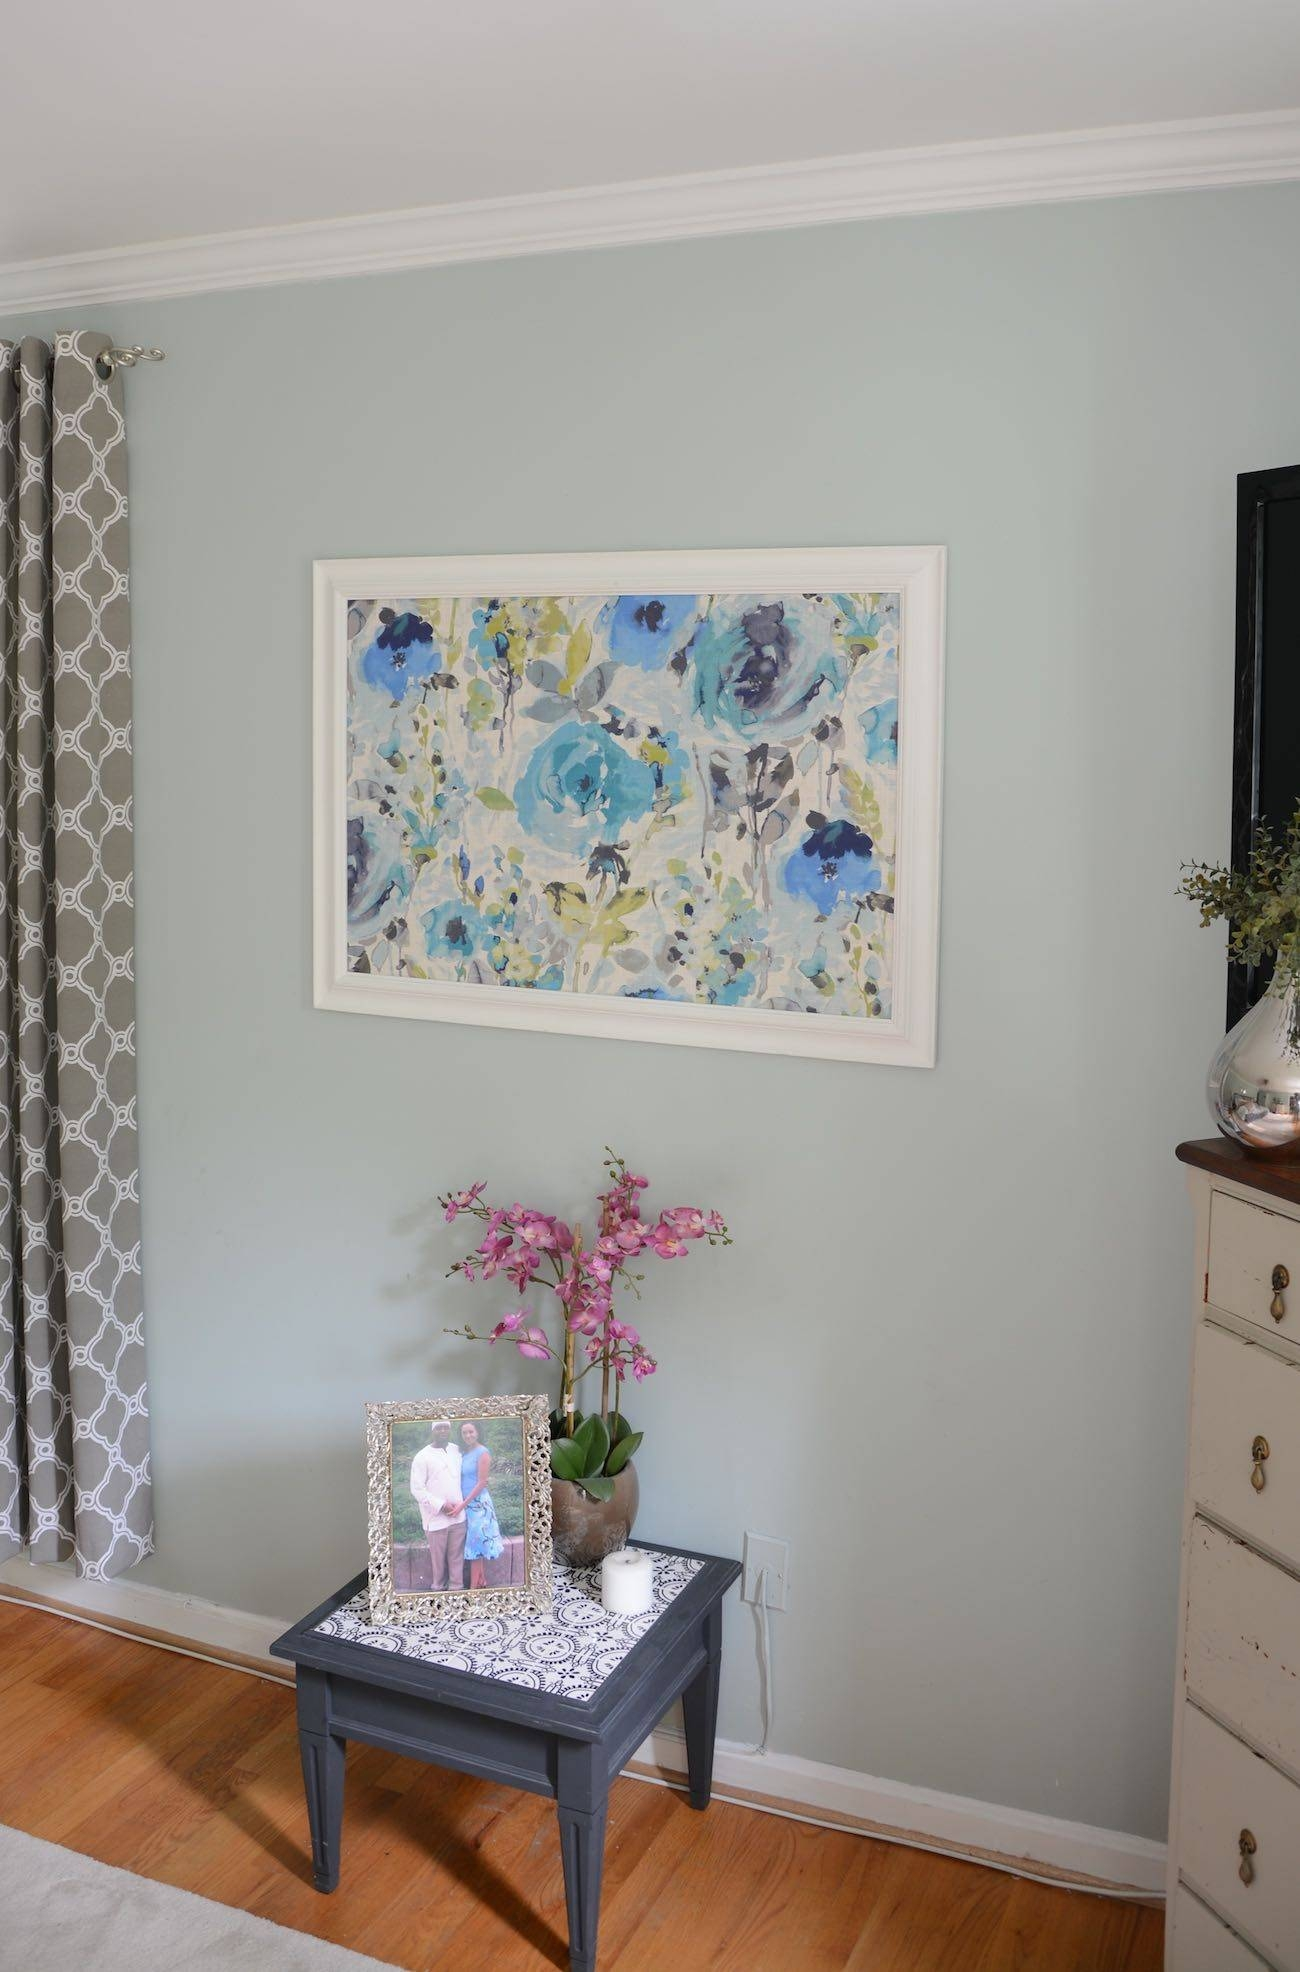 How To Frame Fabric For Wall Art With A Picture Frame Inside Most Current Fabric Wall Art (View 15 of 20)